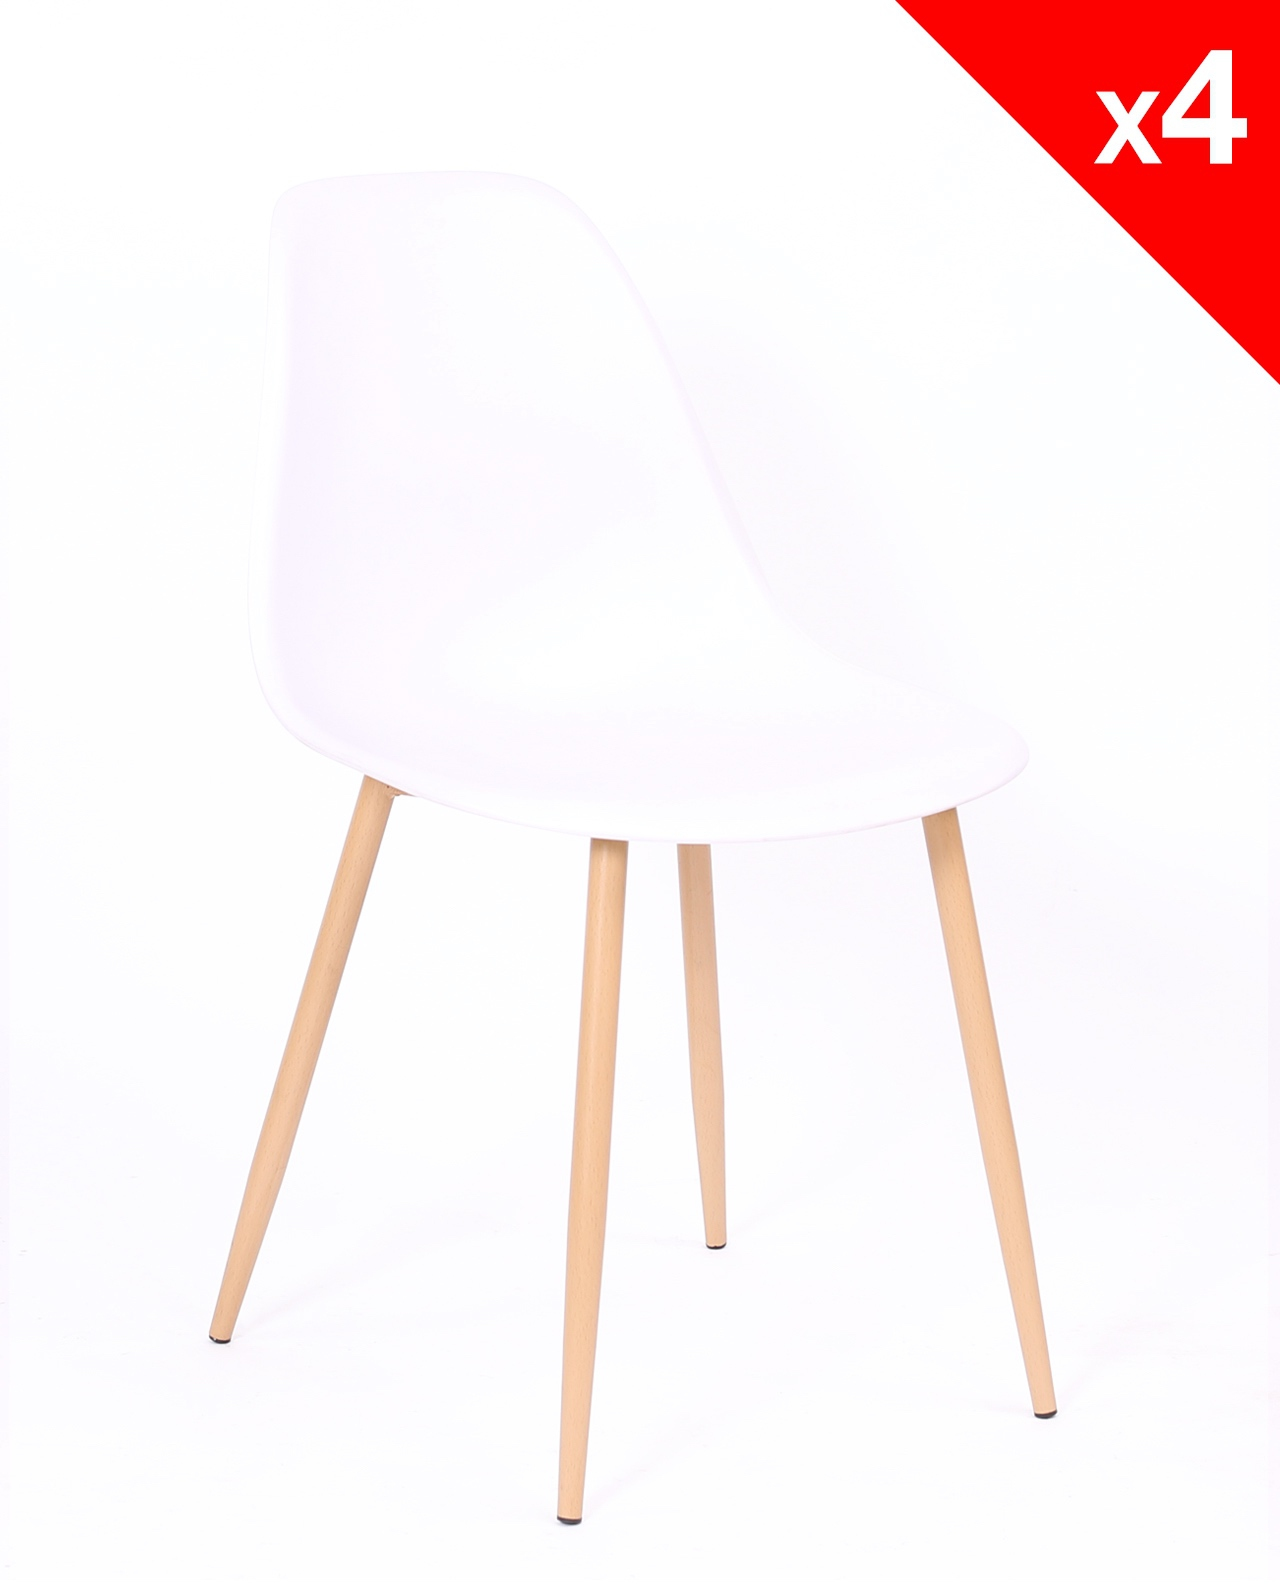 NOVA Lot de 4 chaises scandinaves 94.90€ | Kayelles.com